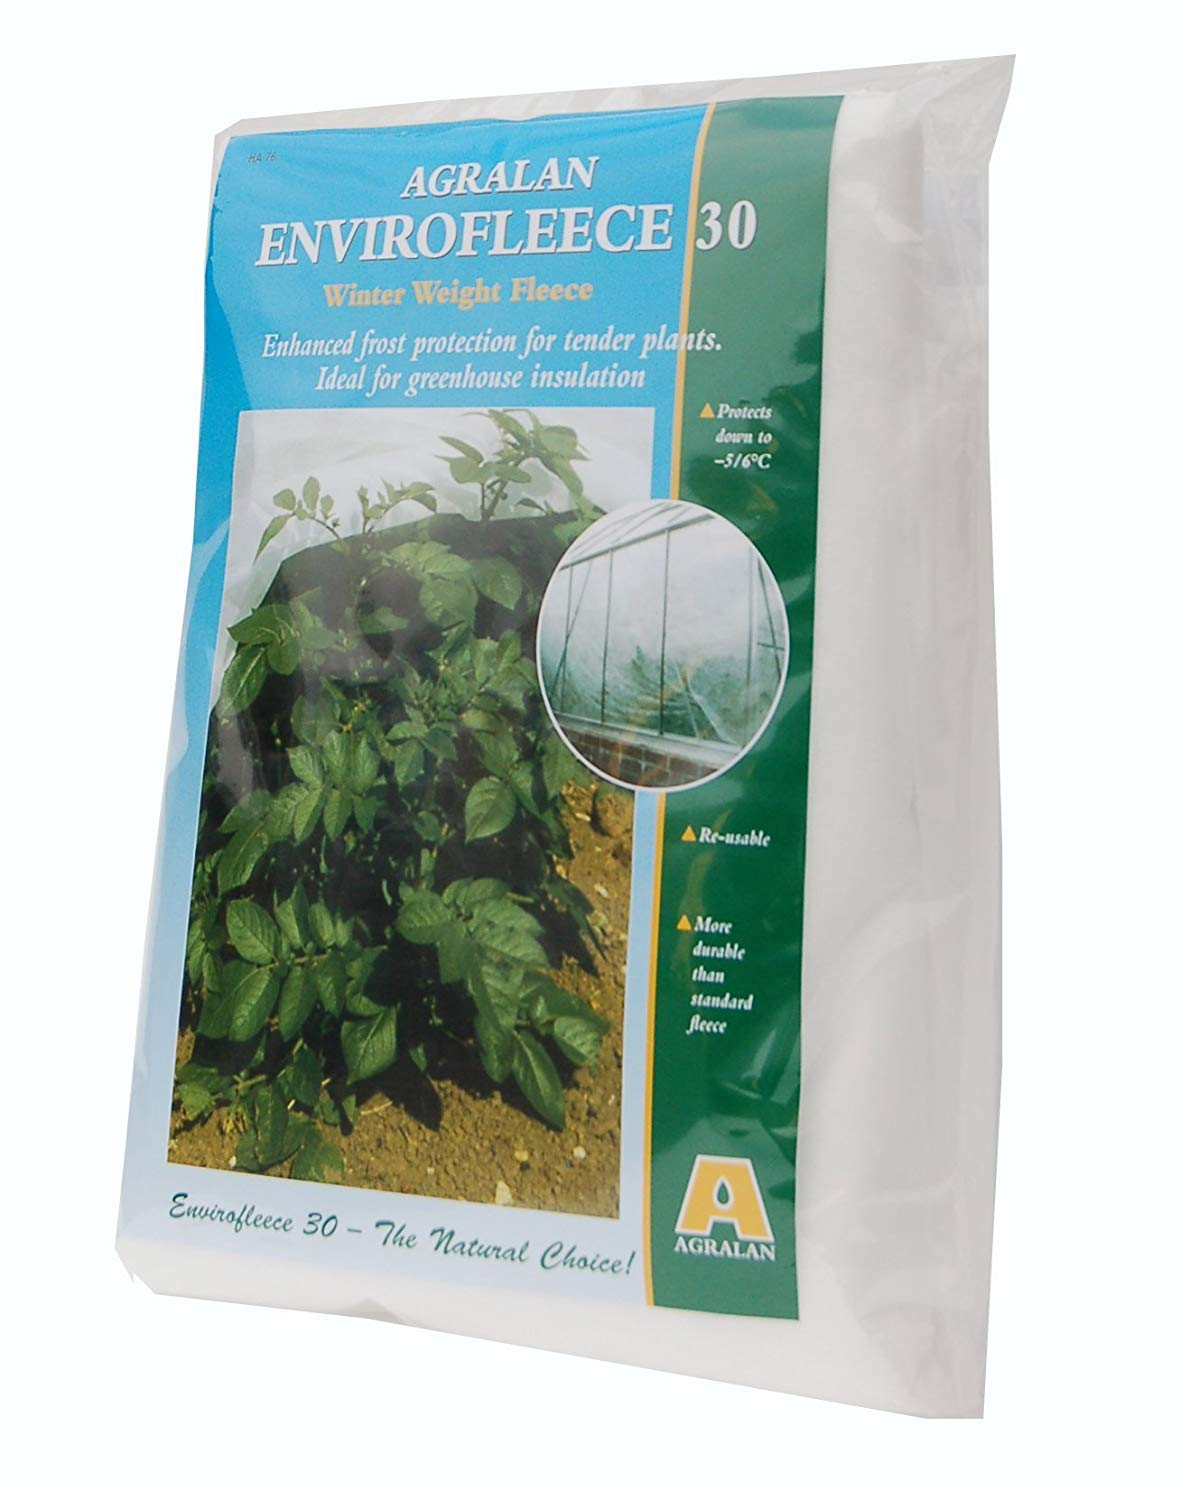 Agralan Heavy Duty 30g Garden Plant Envirofleece Winter Weight Fleece Frost Protection Allotment - Protects down to -6 - Many (1.6m x 10m)